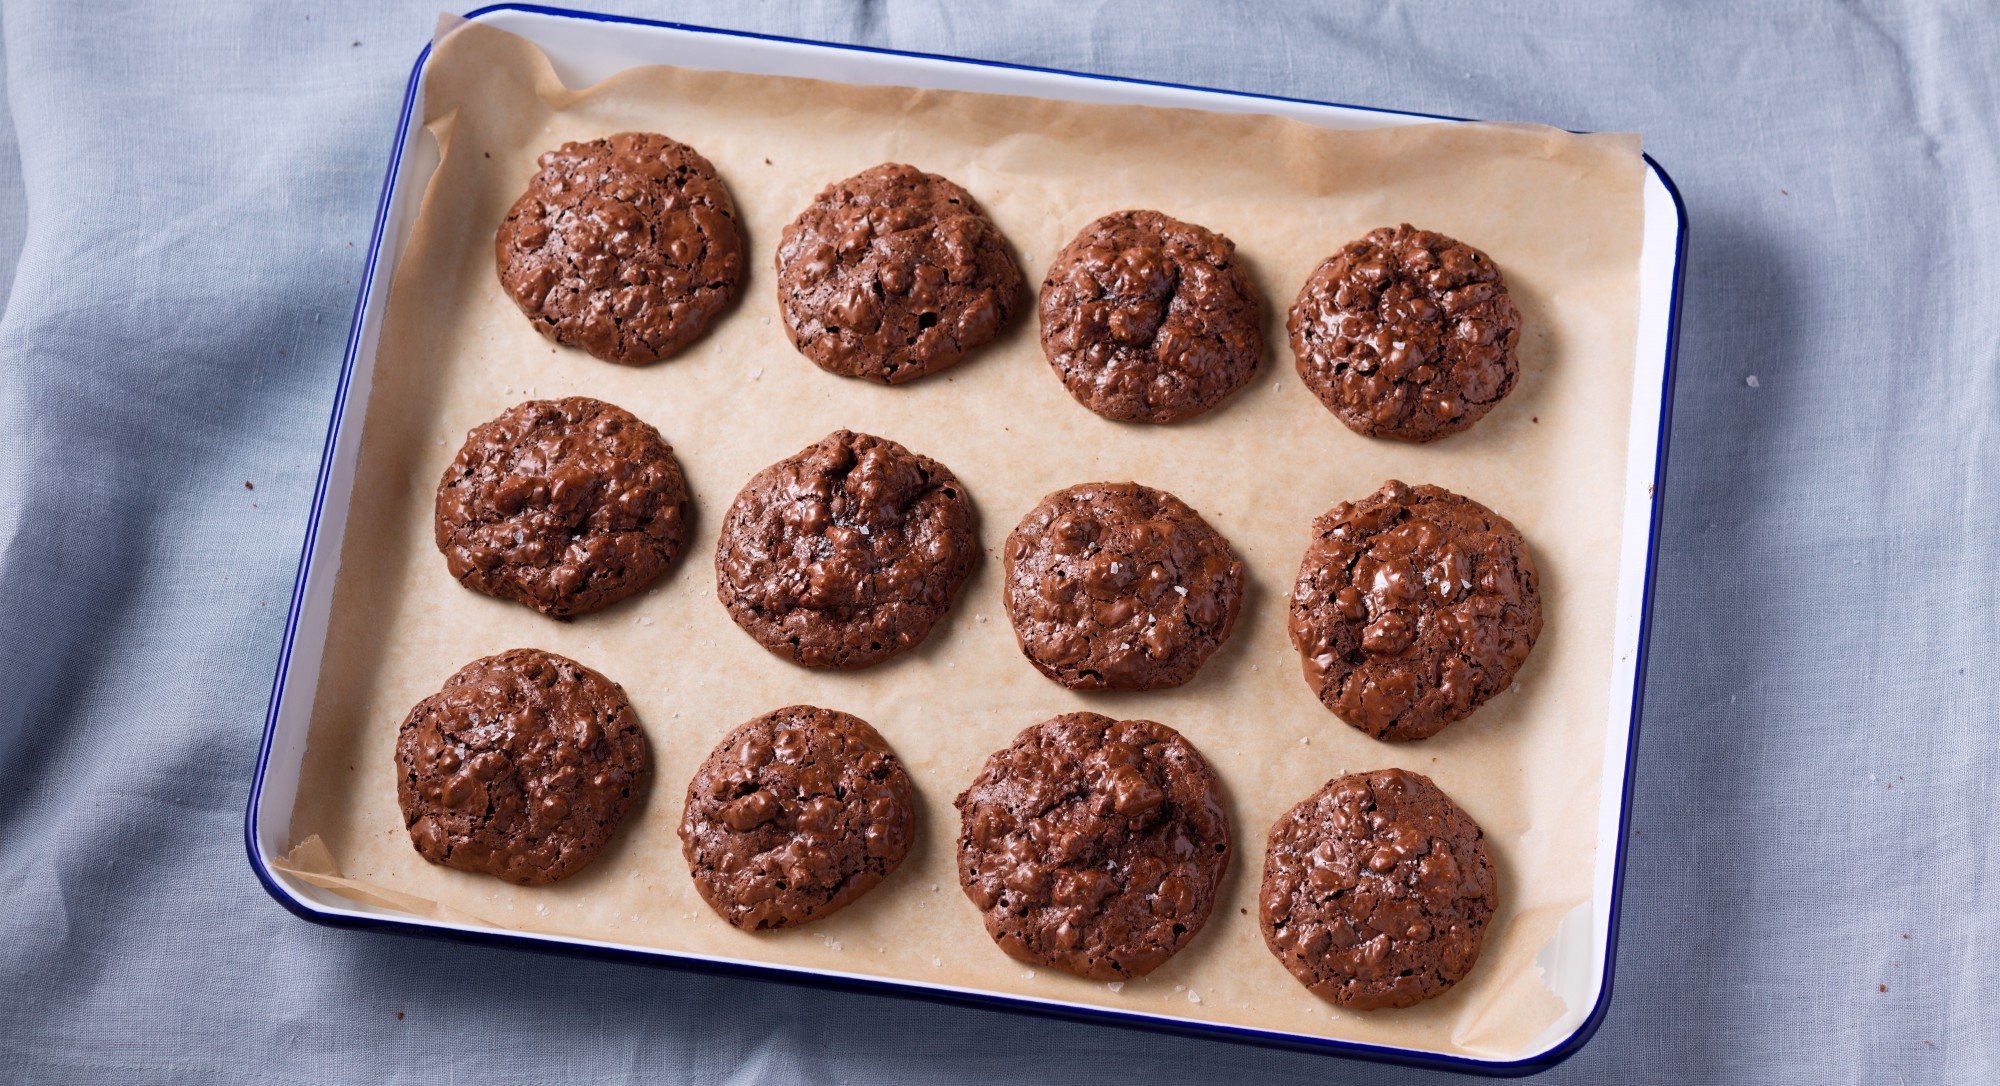 You Won't Miss The Flour in These Gluten-Free Chocolate Walnut Cookies